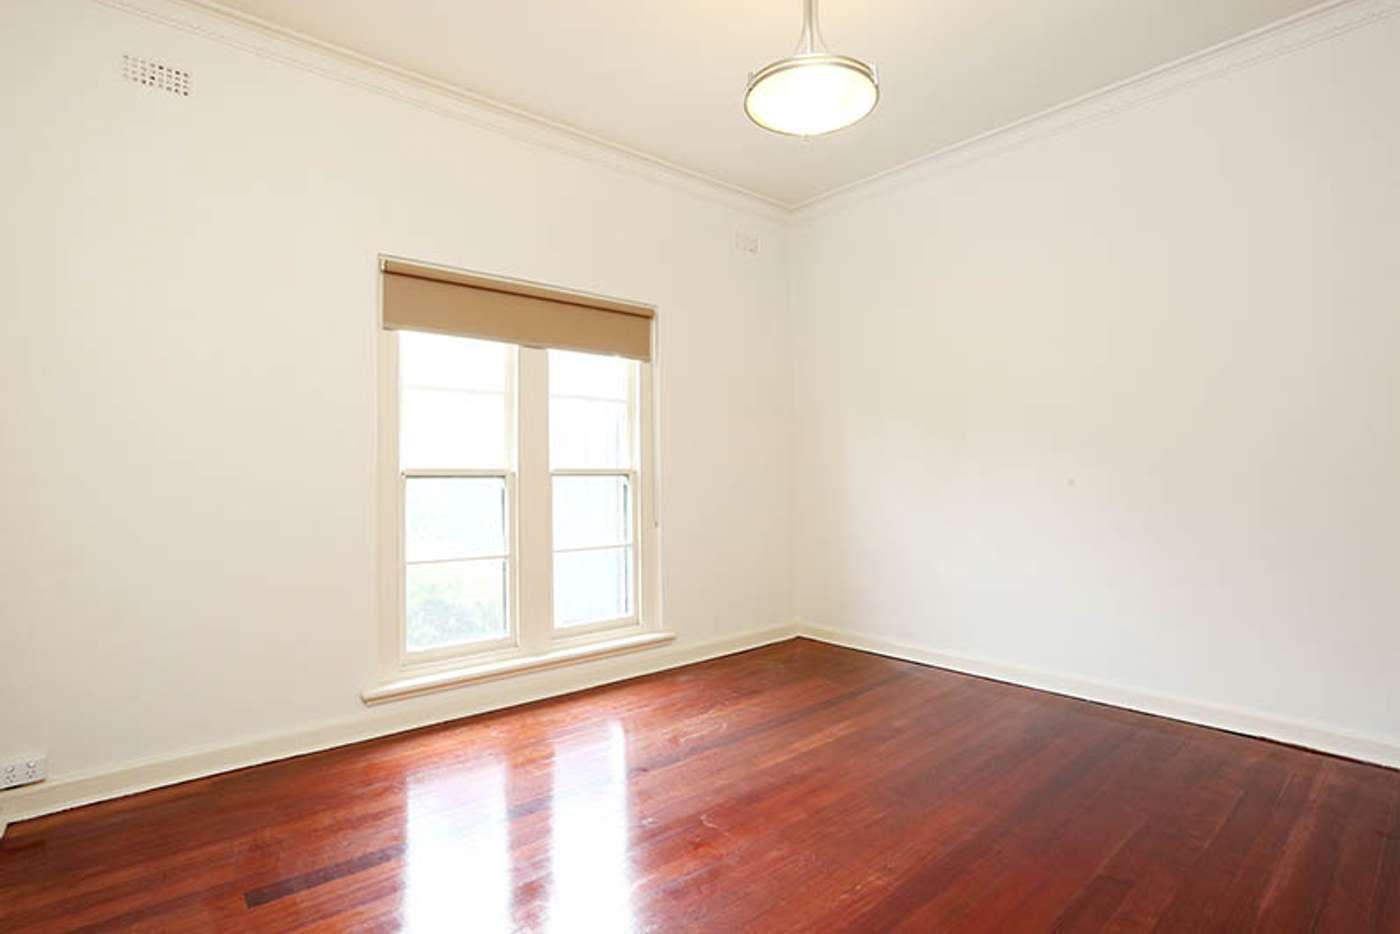 Fifth view of Homely apartment listing, 7/3 Stillman Street, Richmond VIC 3121